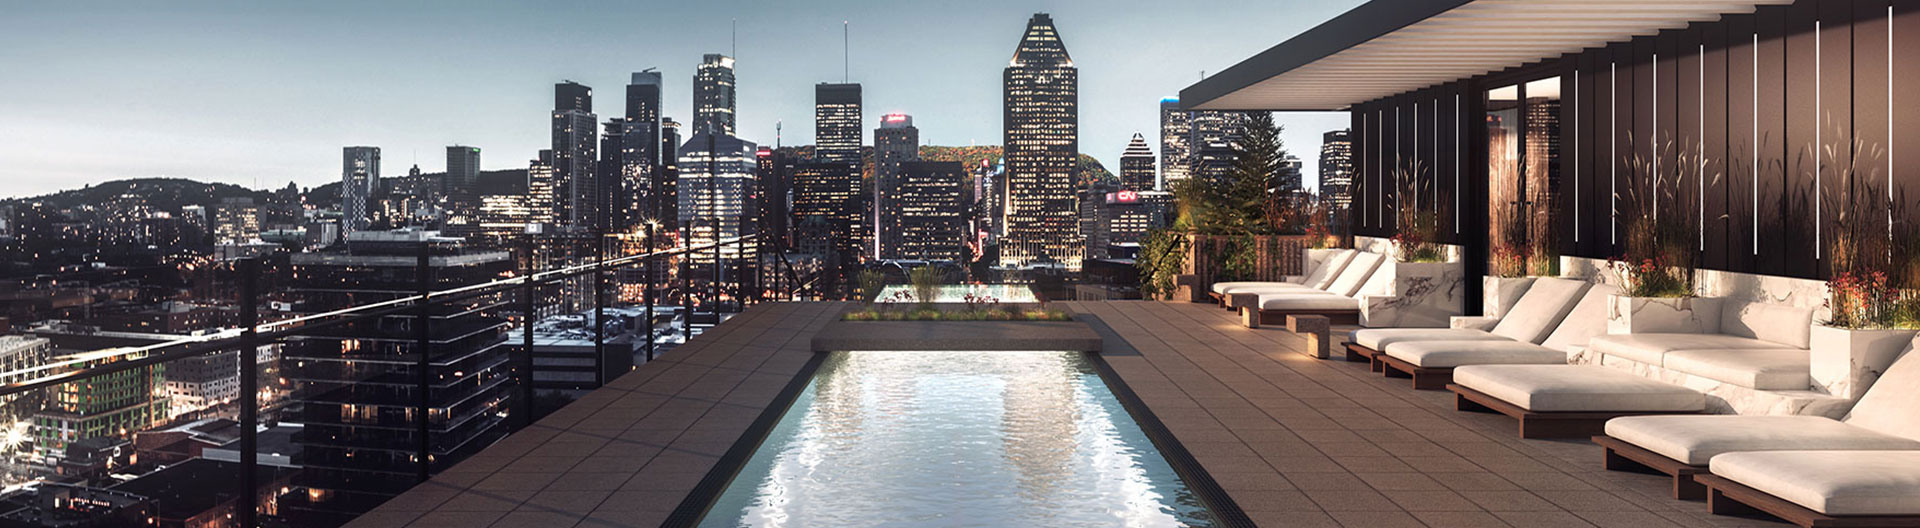 MaryRobert Condominiums : le projet signature de District Griffin! Grand Lancement : printemps 2018!